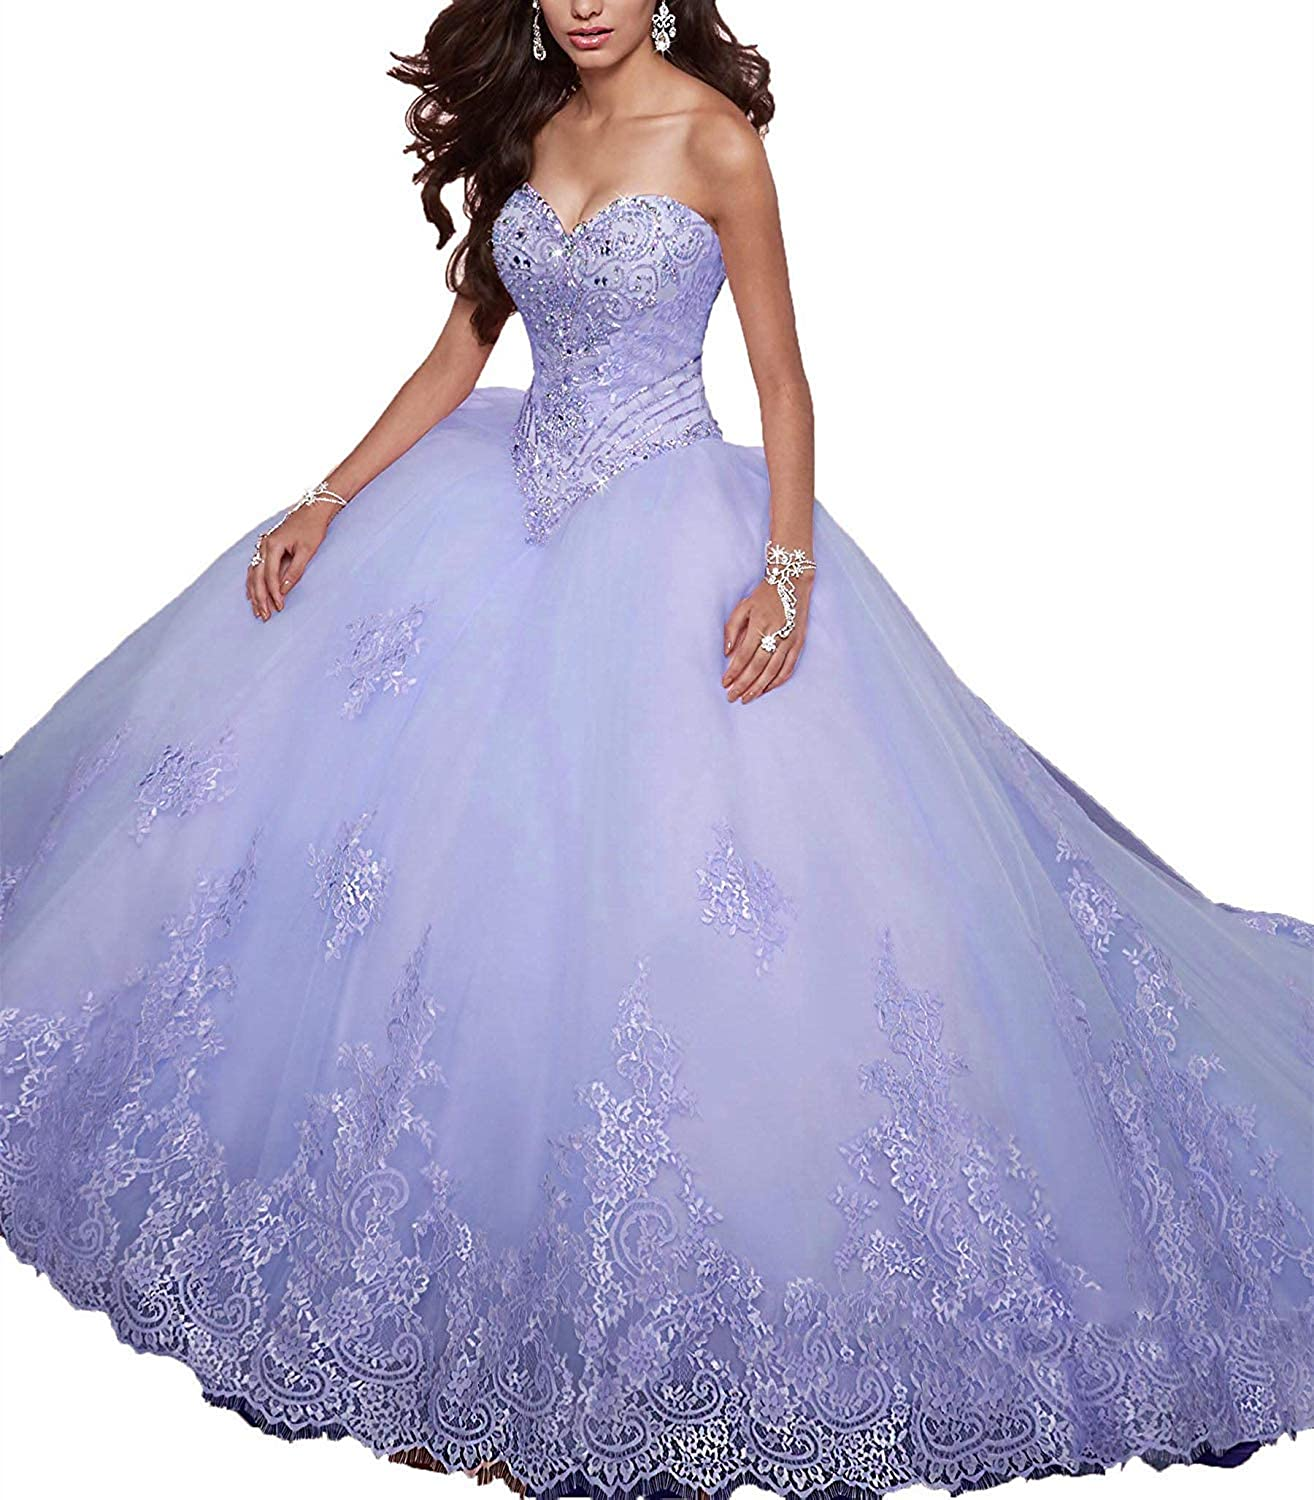 20KyleBird Women's Sweetheart Lace Appliques Quinceanera Dresses Ball Gown Beaded Sweet 16 Princess Dresses